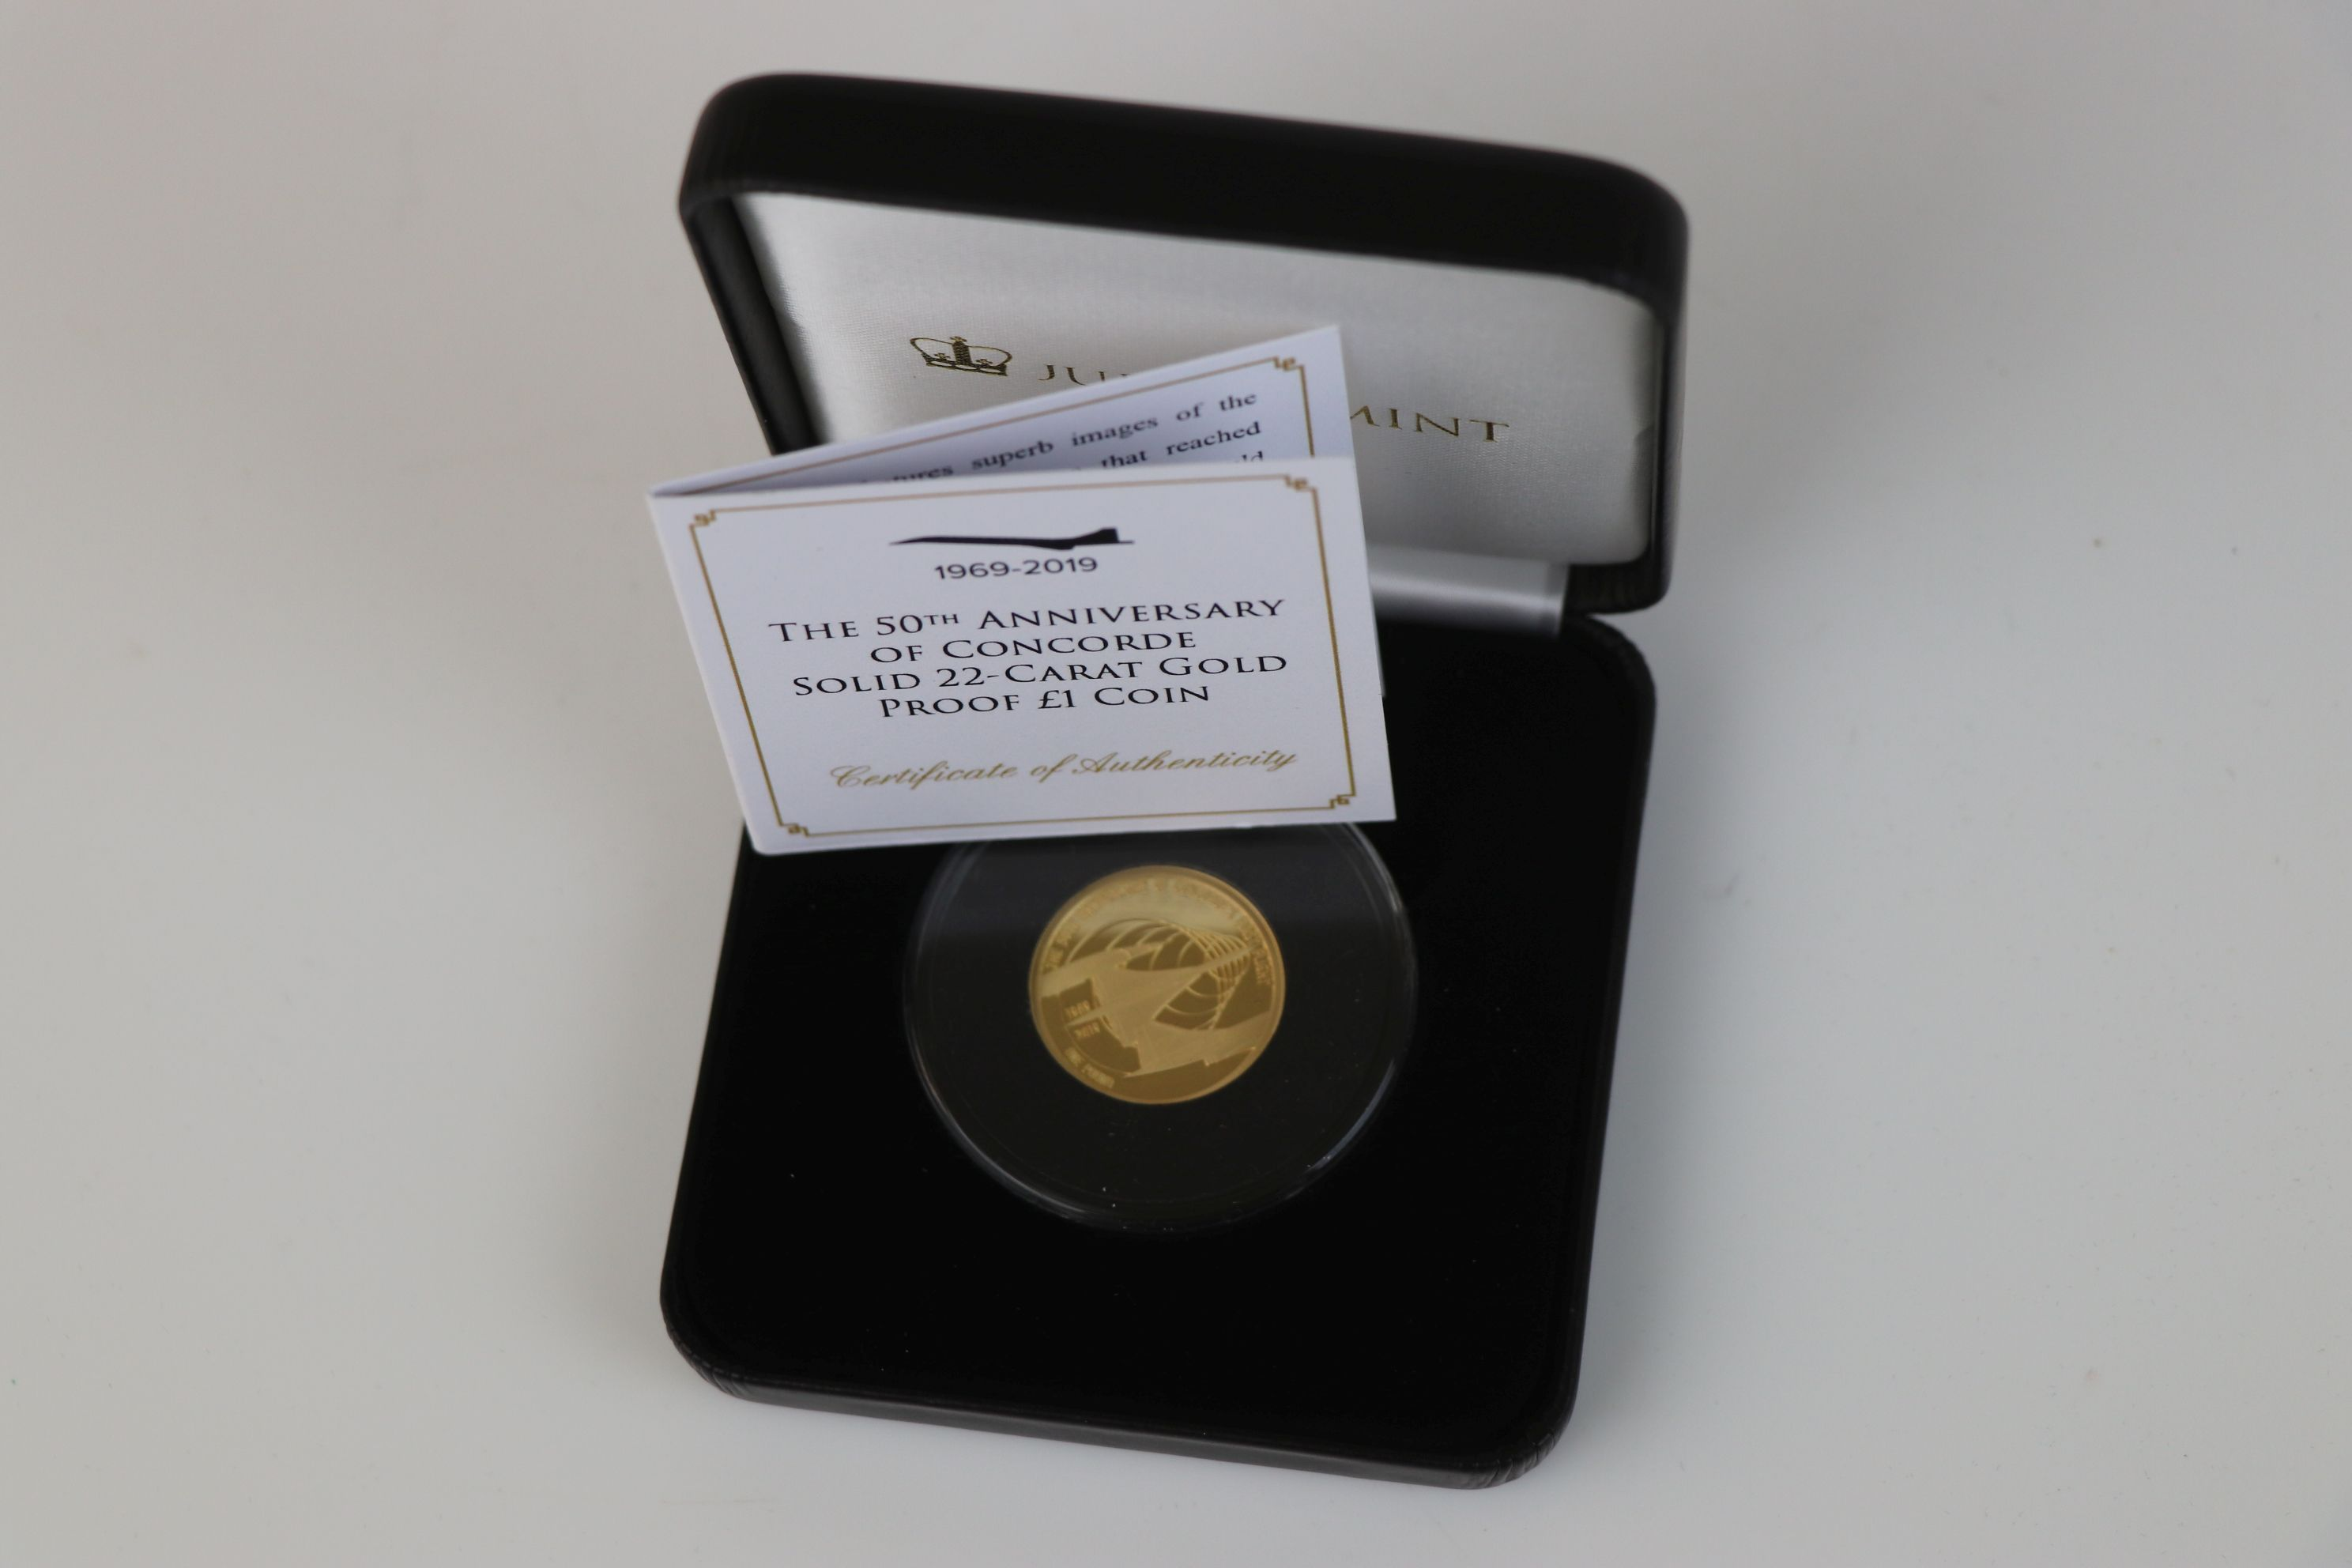 A cased Jubilee Mint The 50th Anniversary of Concorde 22ct gold proof £1 coin, complete with C.O. - Image 2 of 5